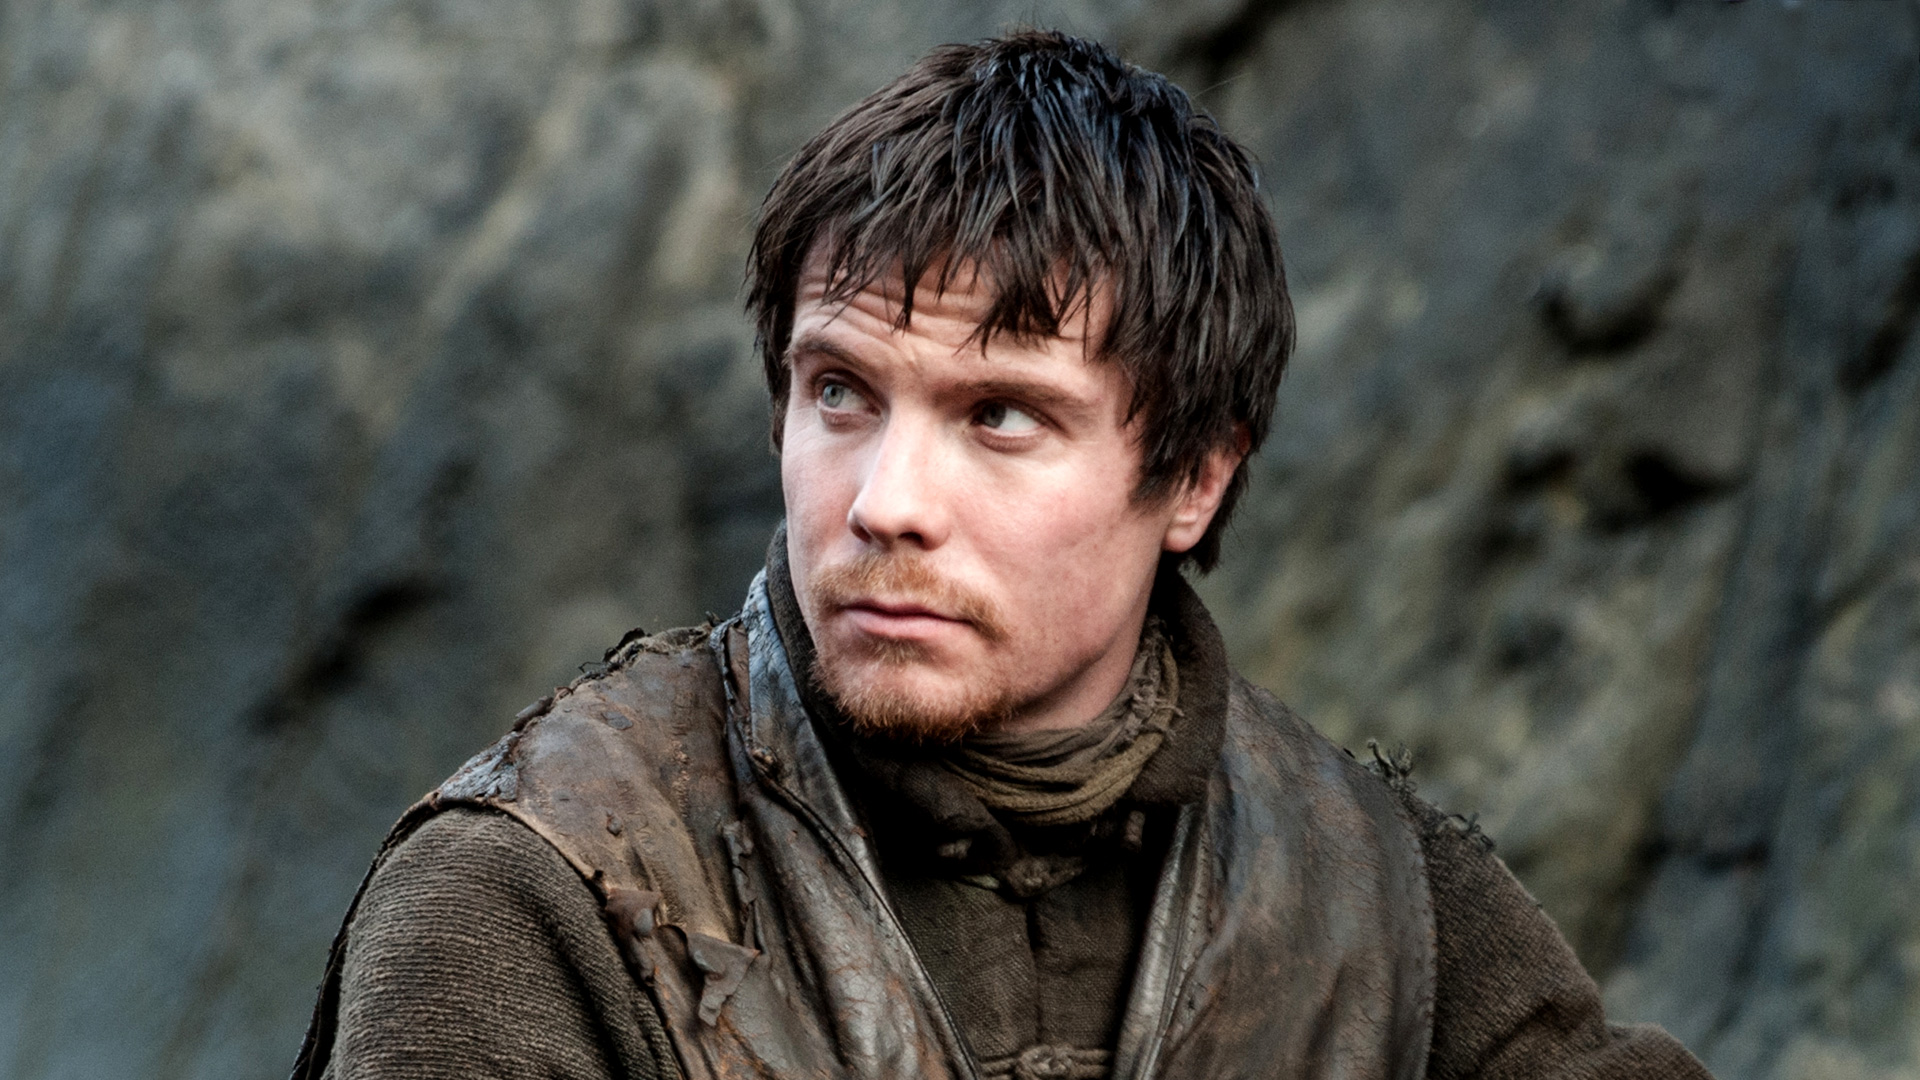 hottest game of thrones men gendry